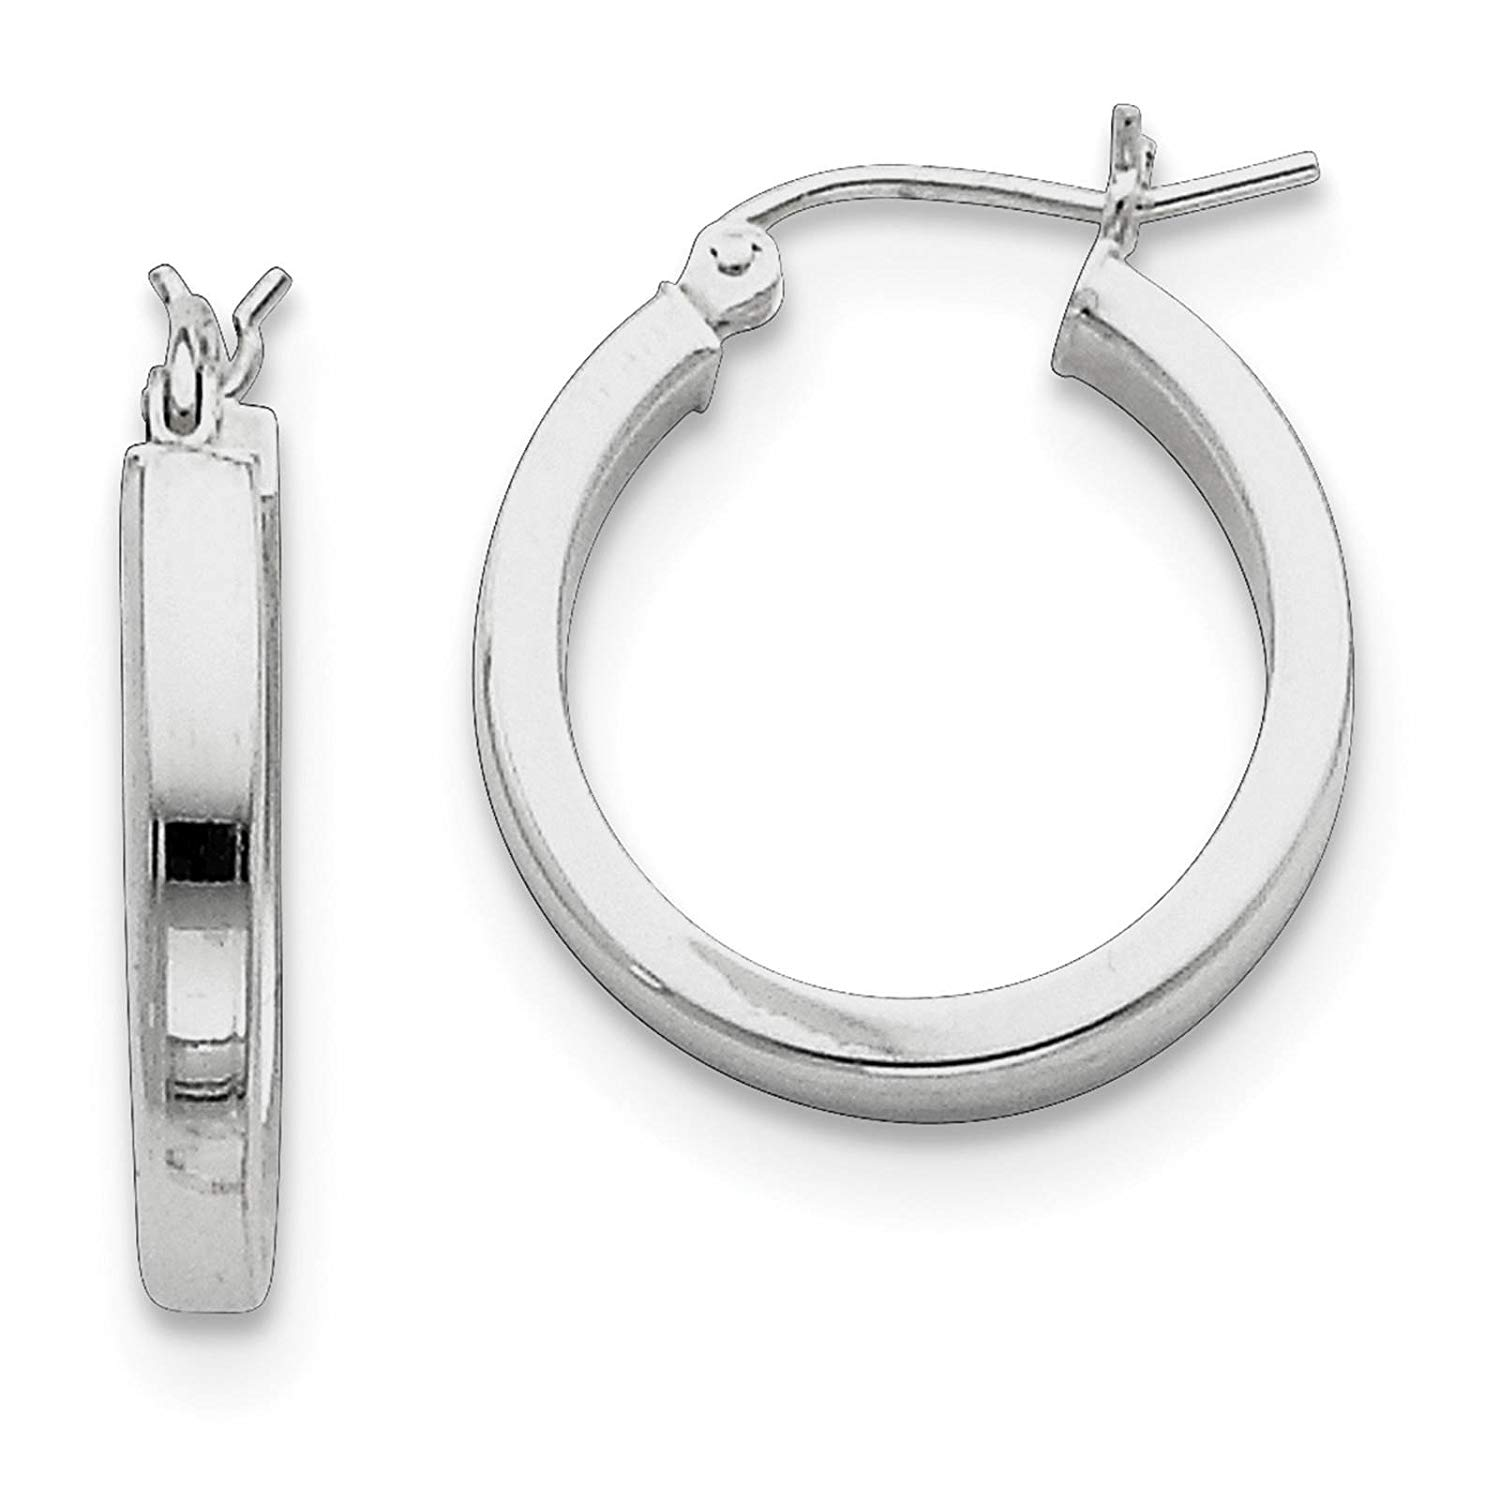 .925 Sterling Silver Rhodium-plated Polished Square-tube Hoop Earrings 3mm x 20mm